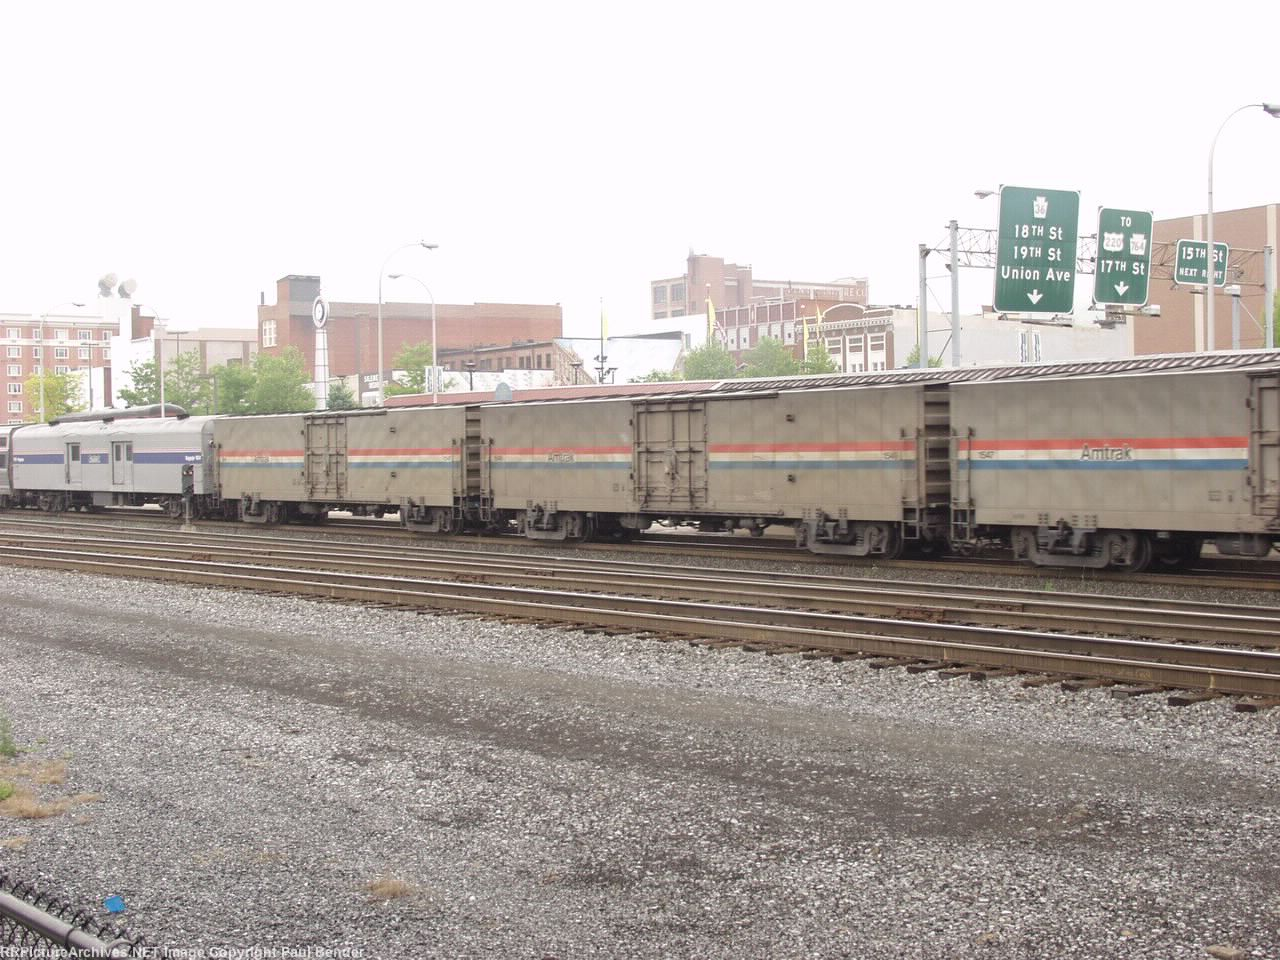 3 Material Handling Cars and a heritage baggage on the Three Rivers